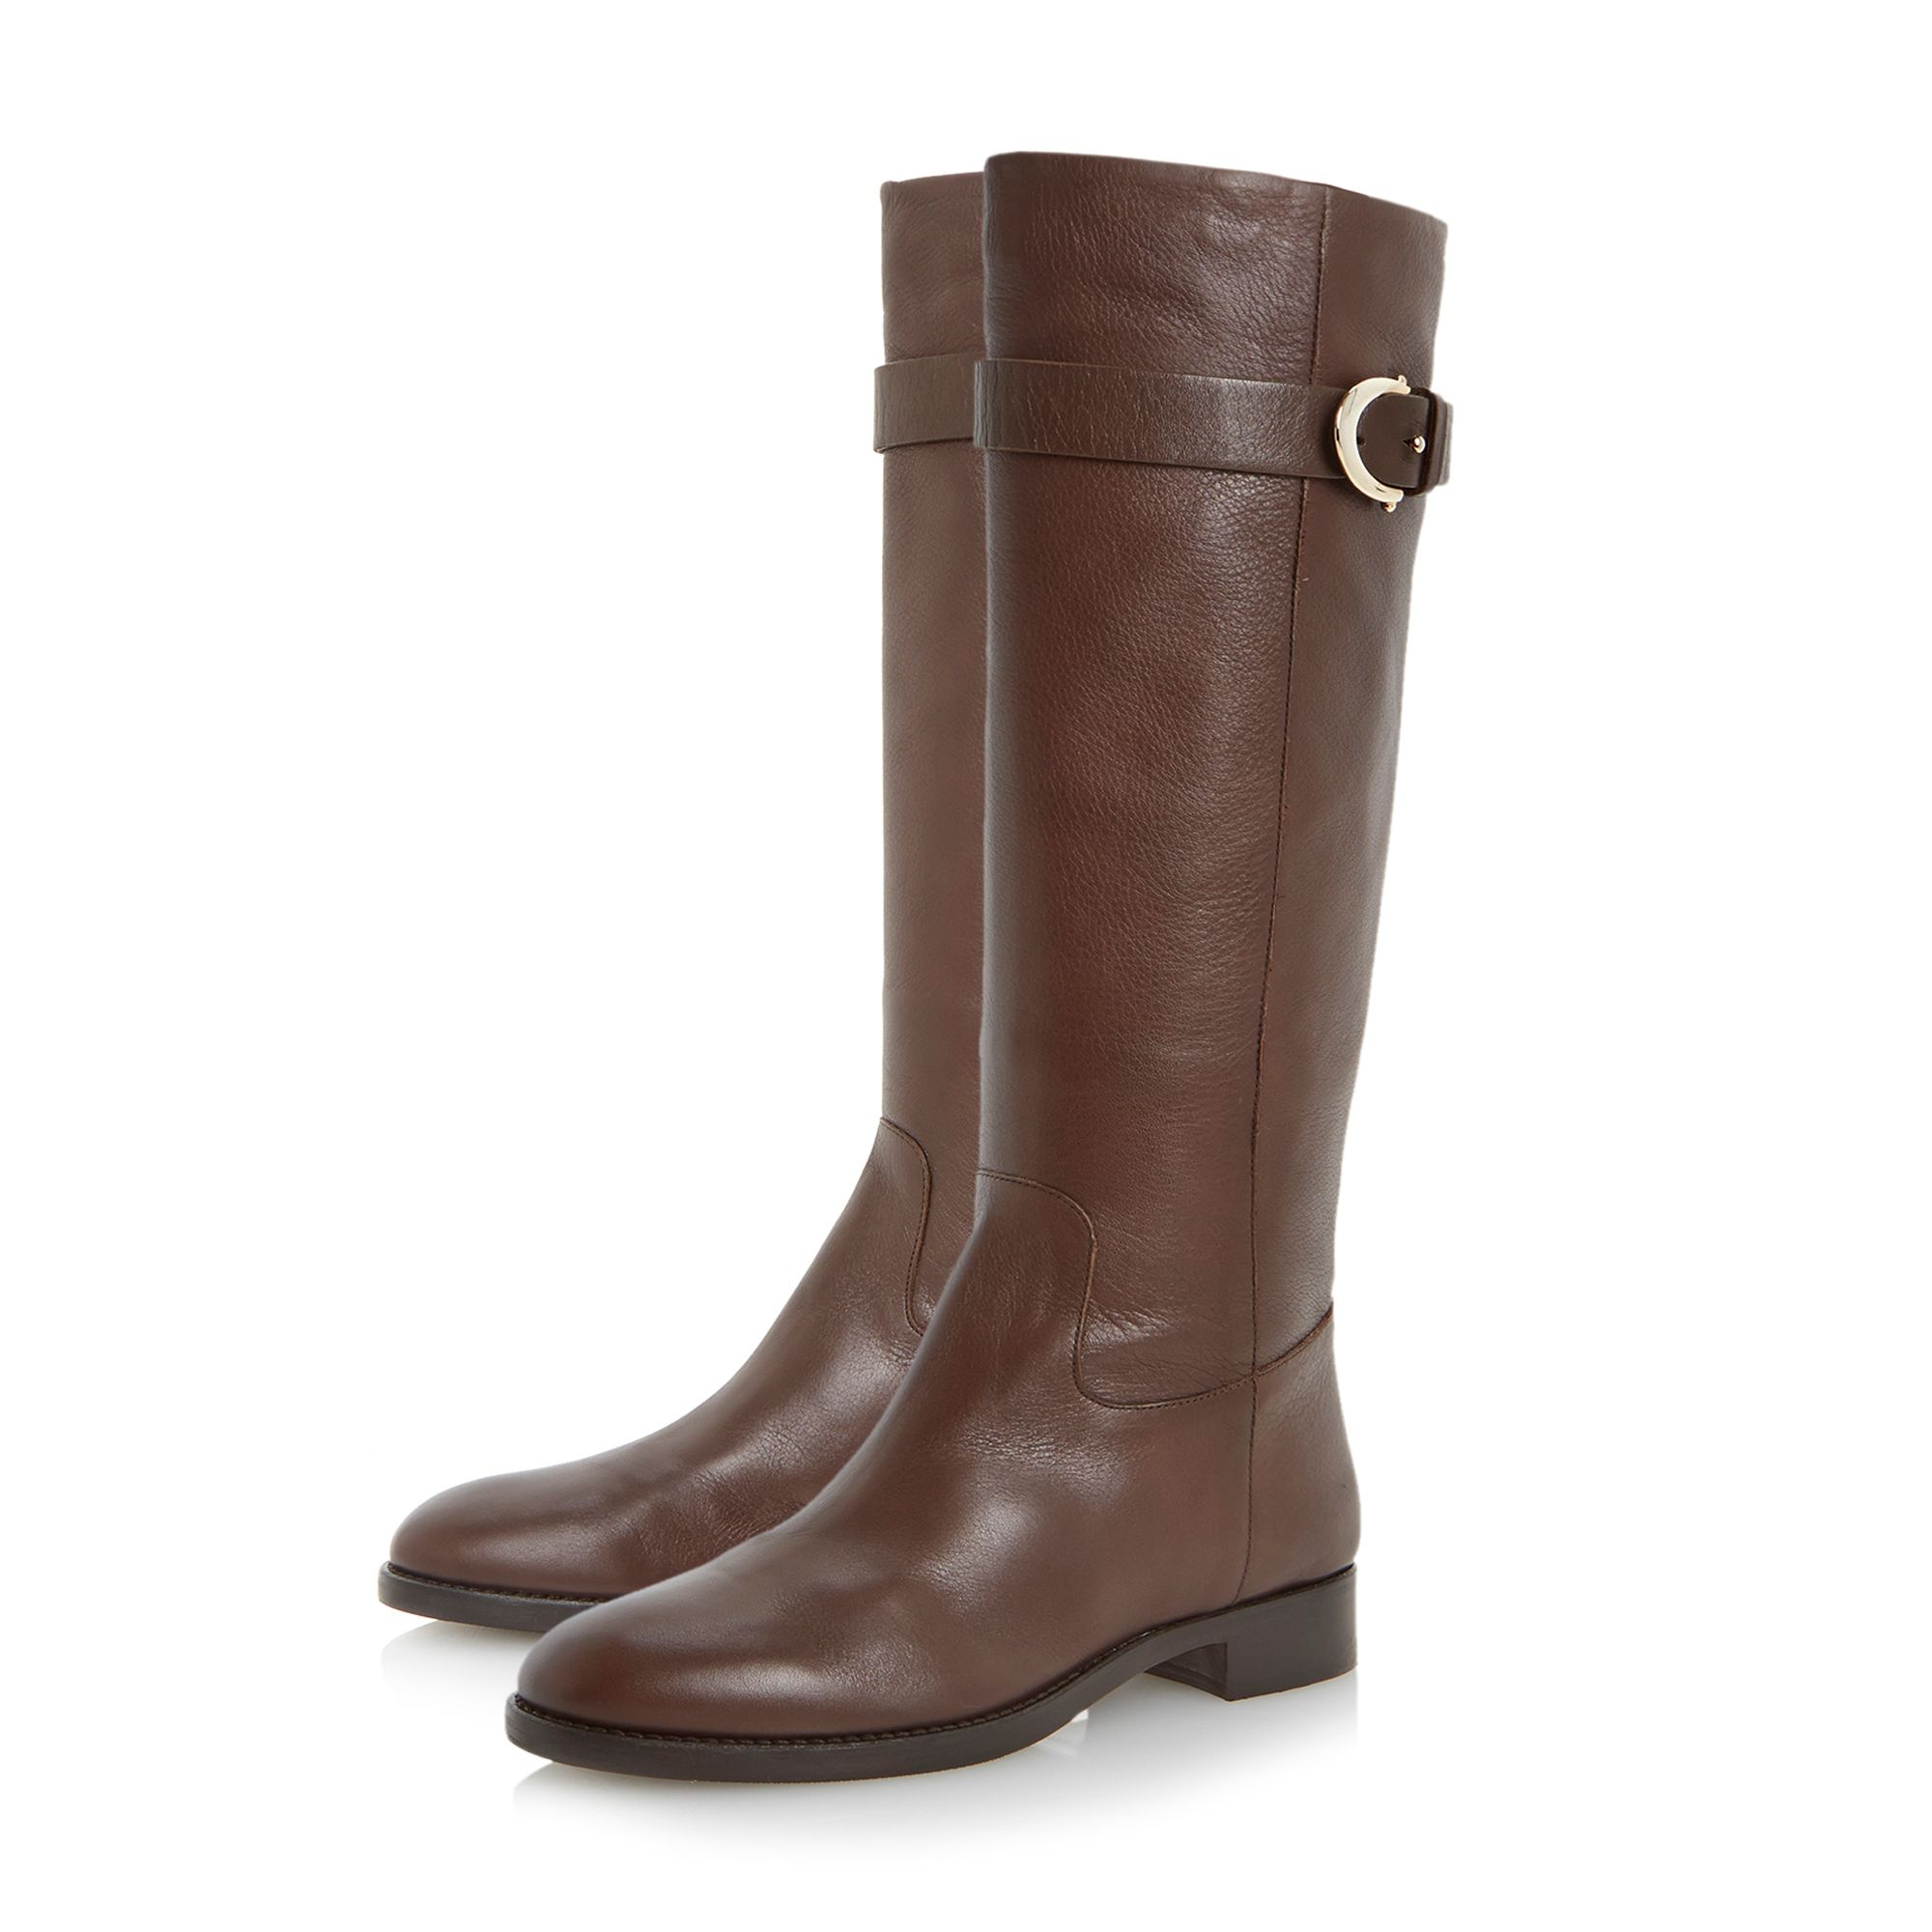 Dune Black Leather Tessie Knee High Buckle Detail Boots in Brown